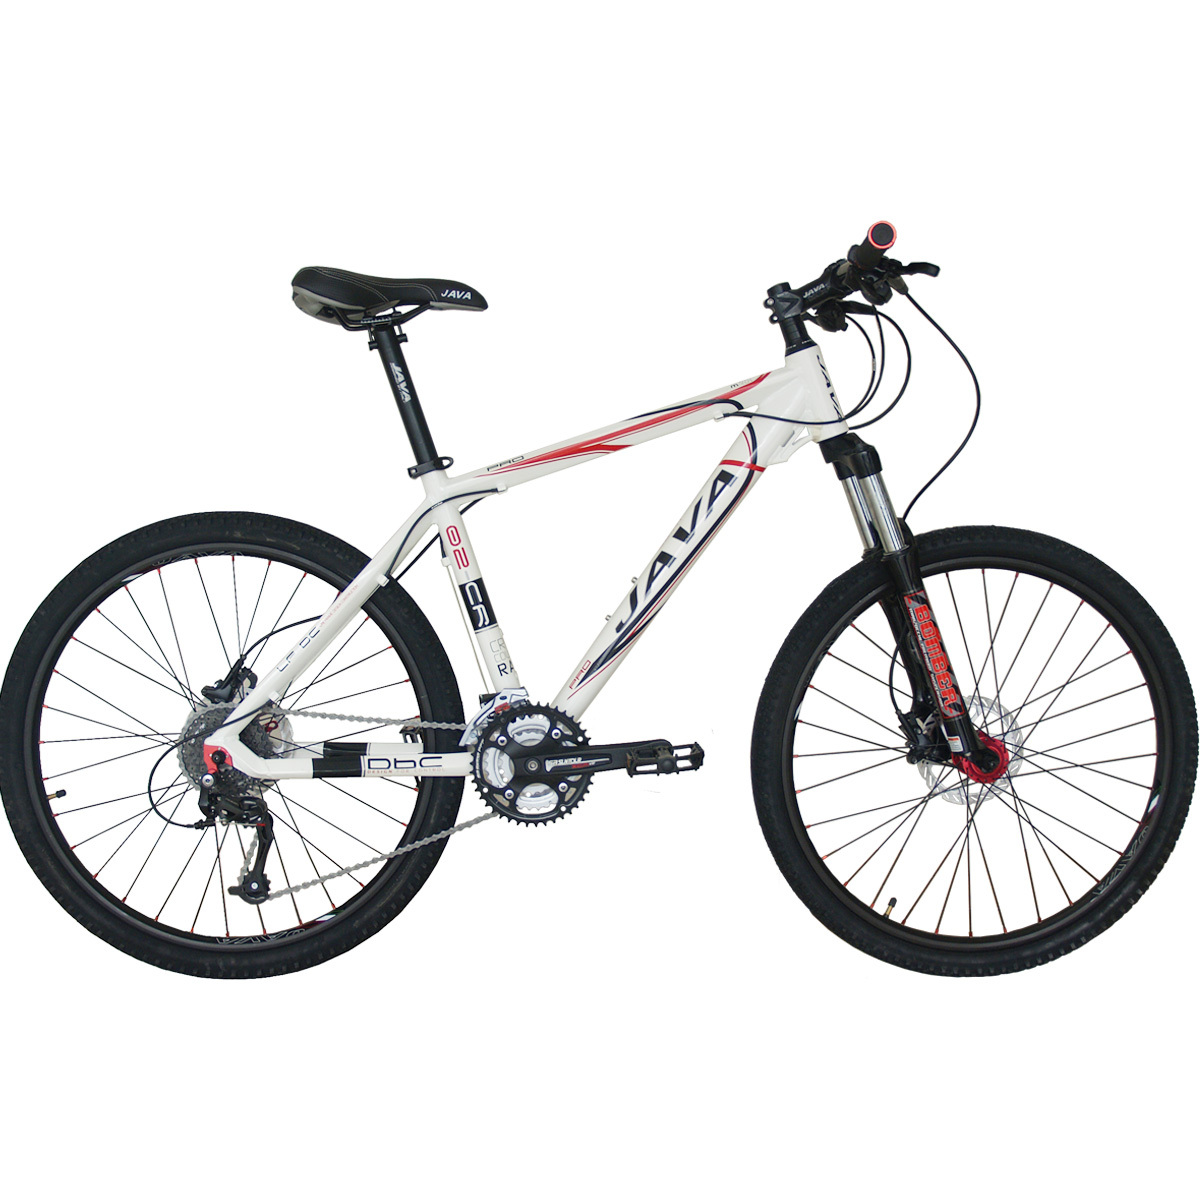 Bikes Online Cheap Java pro mountain bike